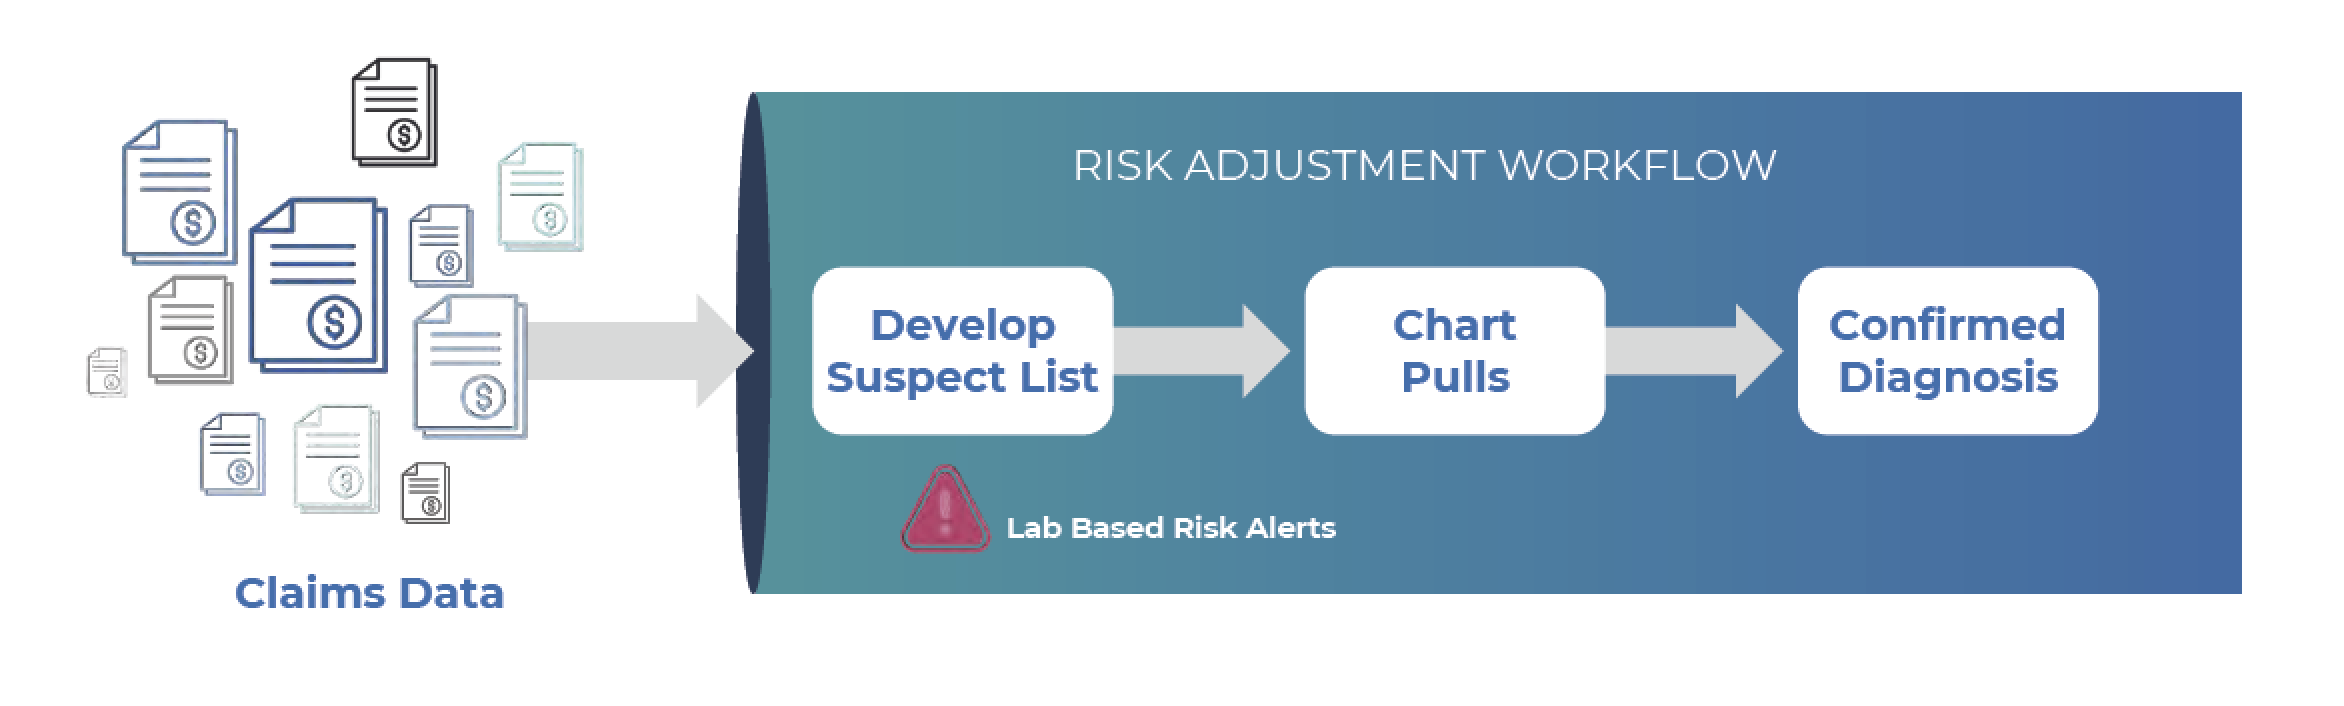 Lab data augments and refines risk adjustment process